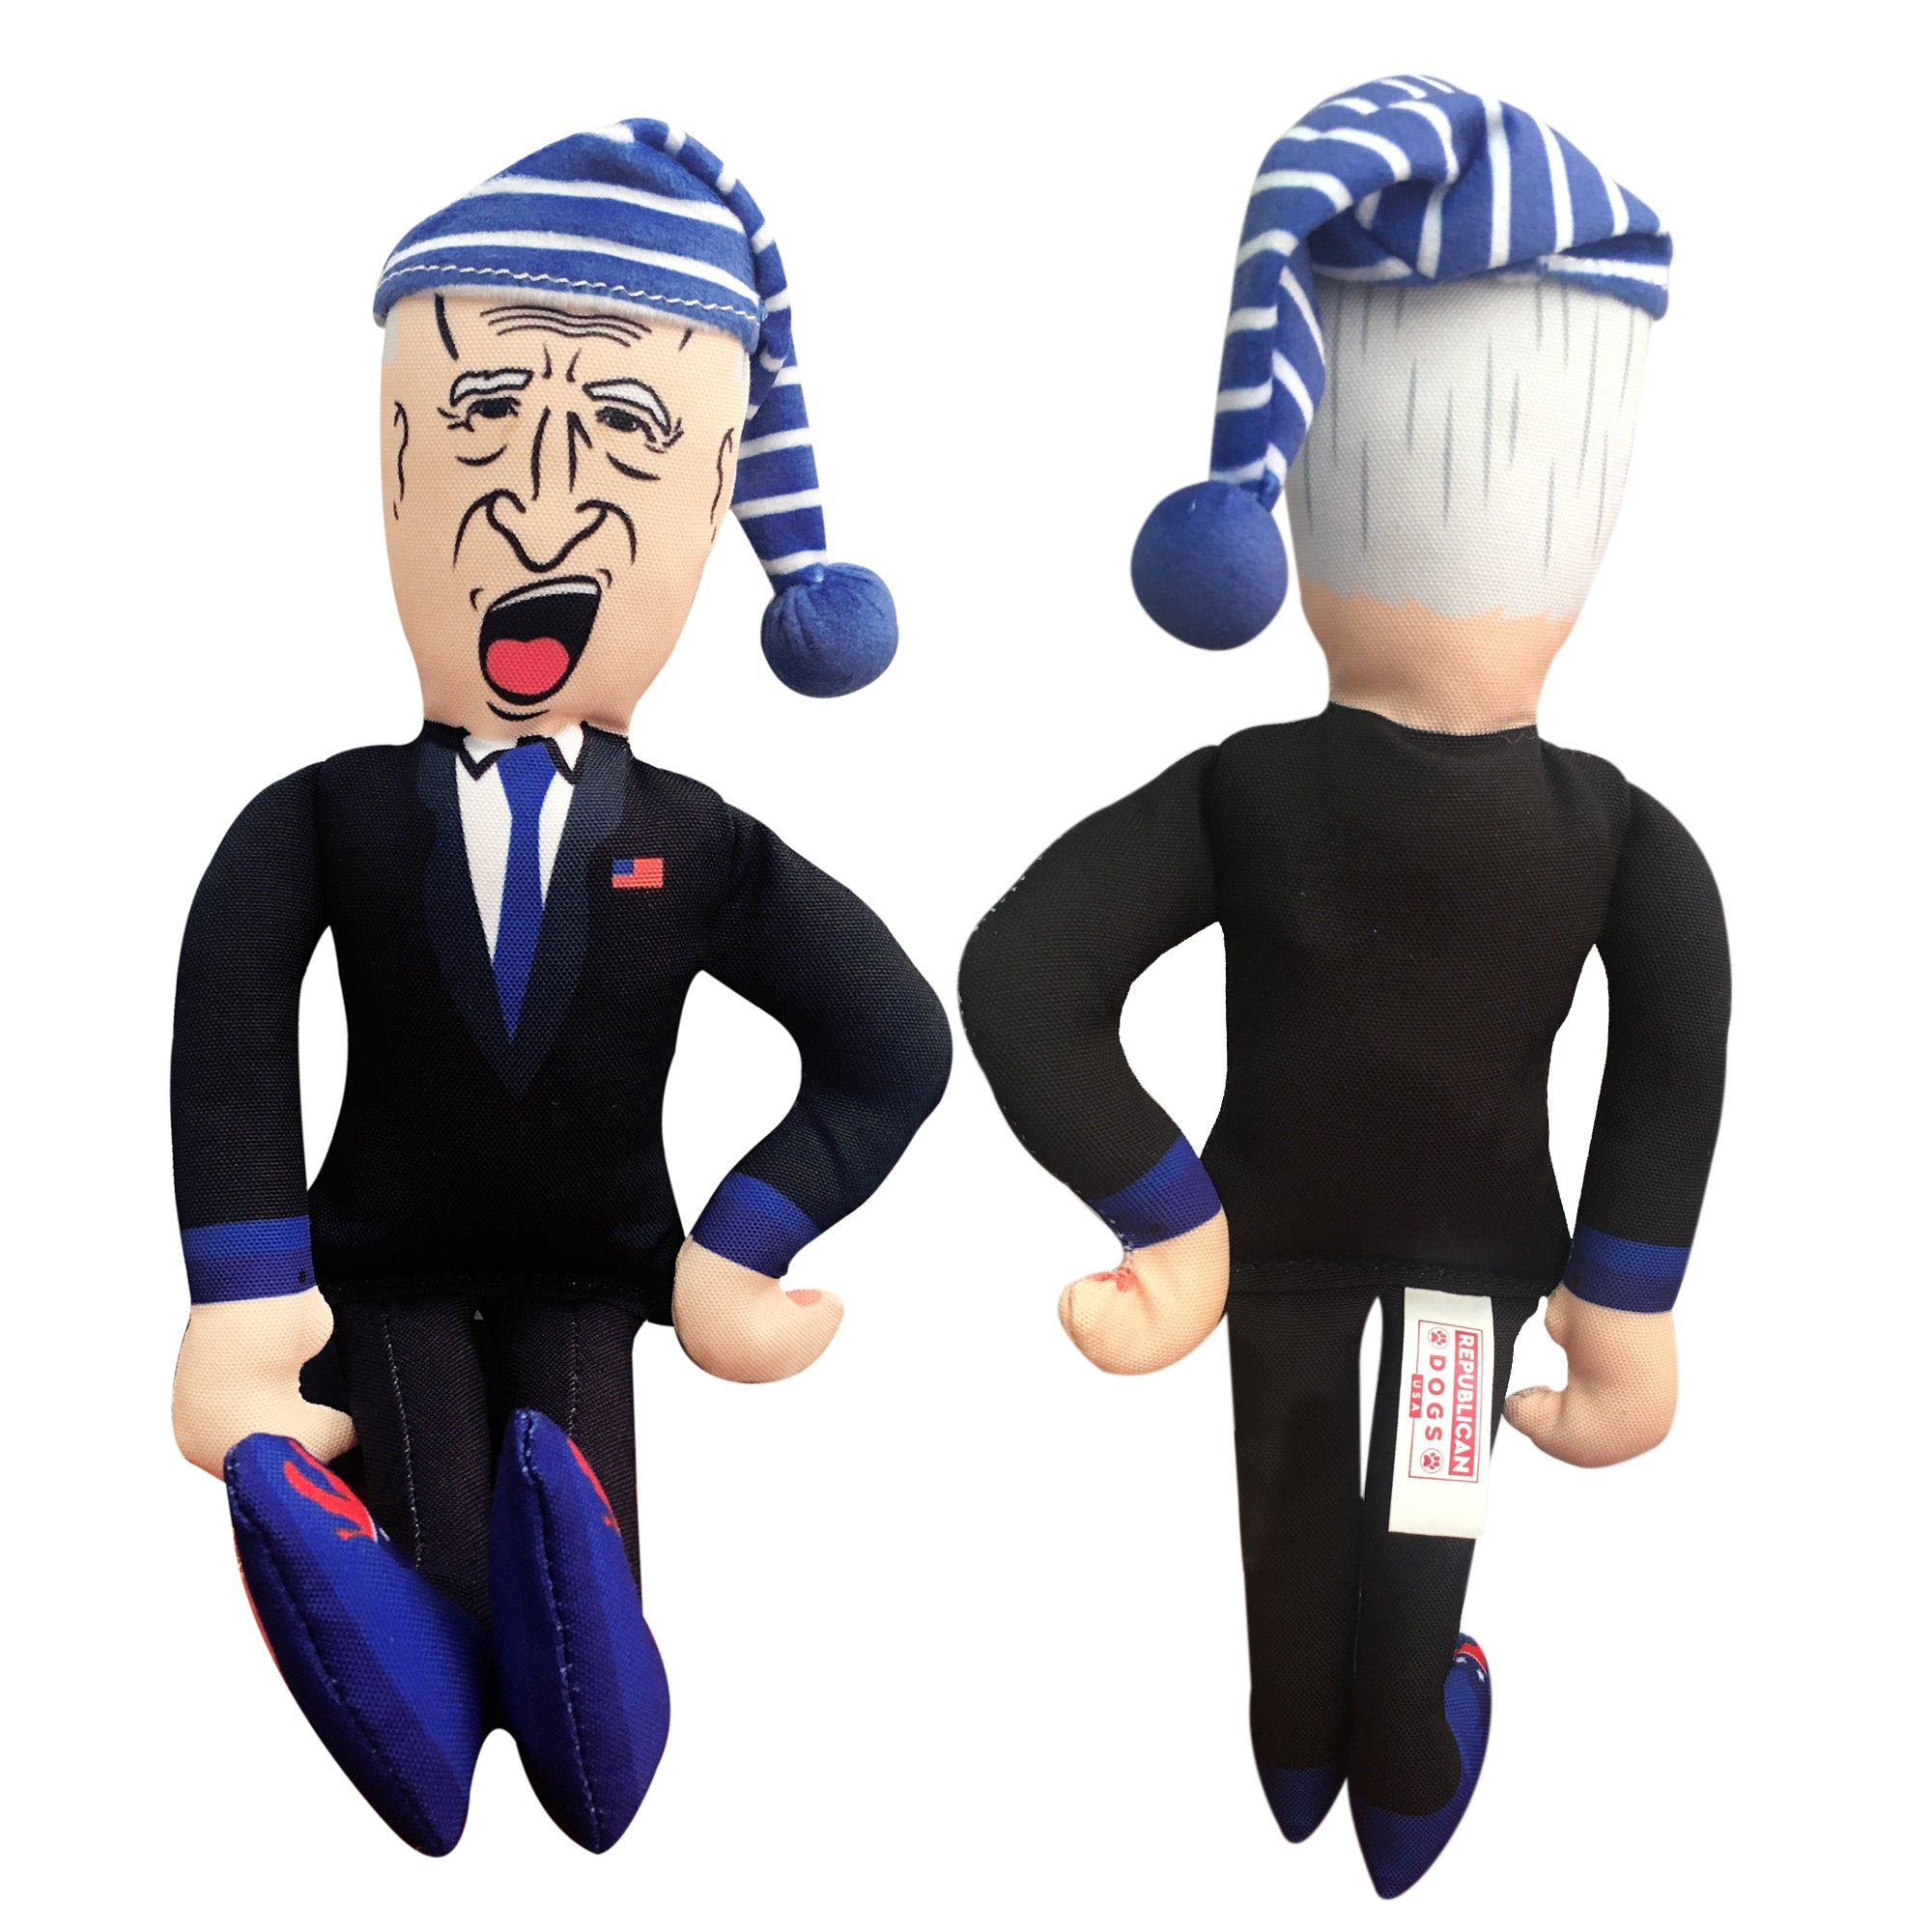 Sleepy Joe Biden Chew Toy